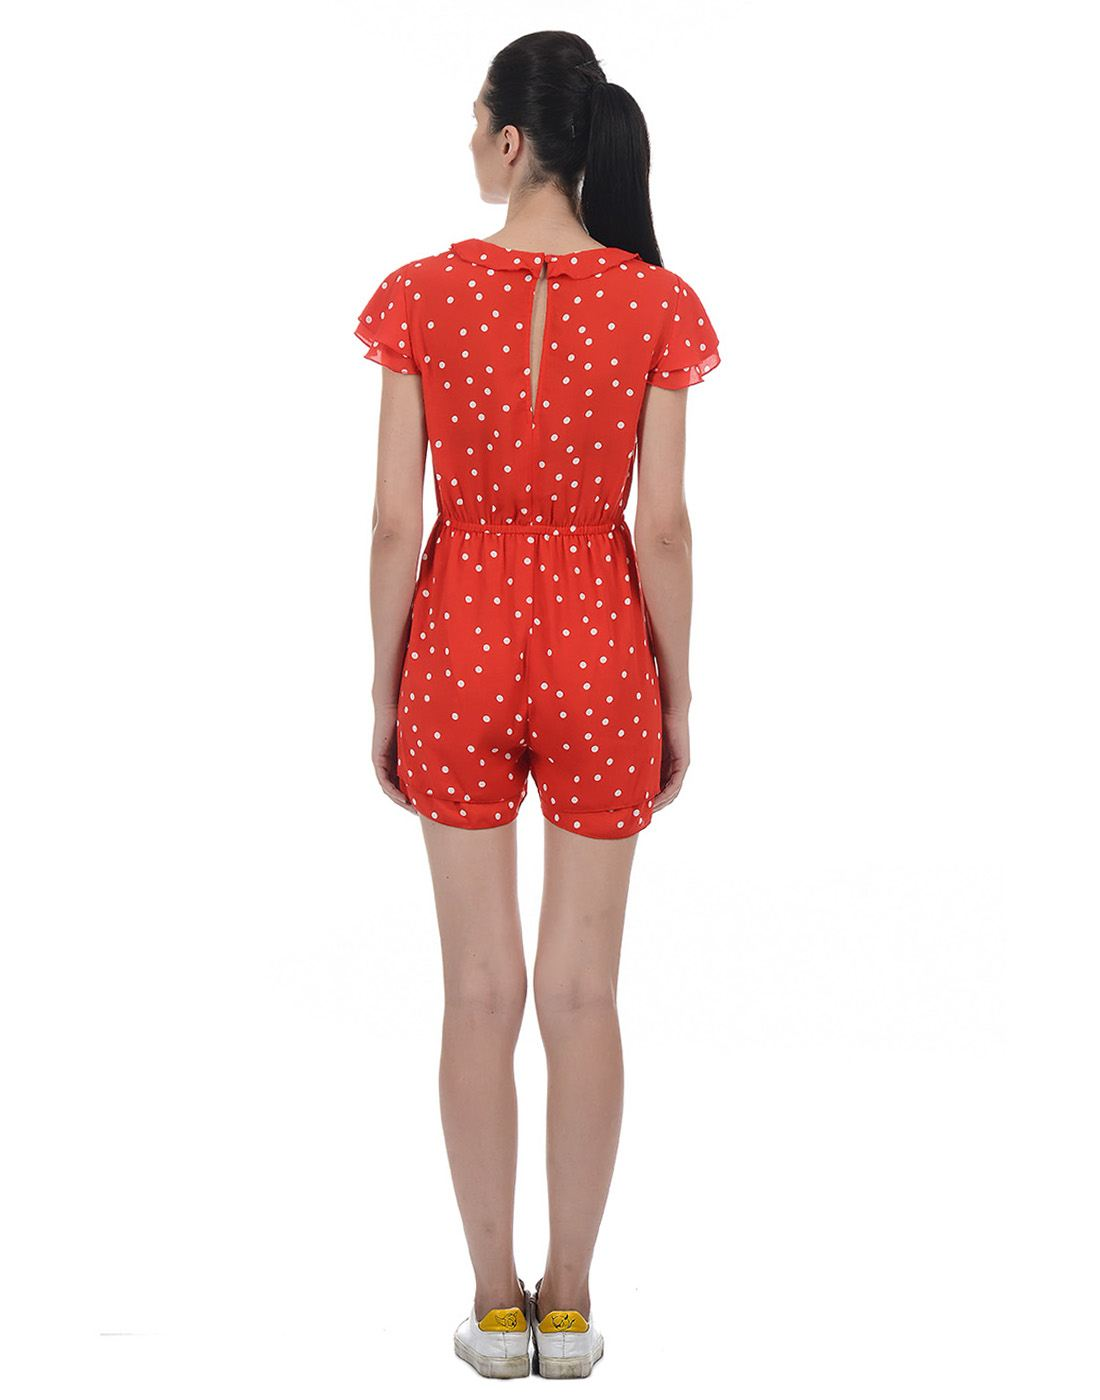 Only Women Casual Red Jump Suit